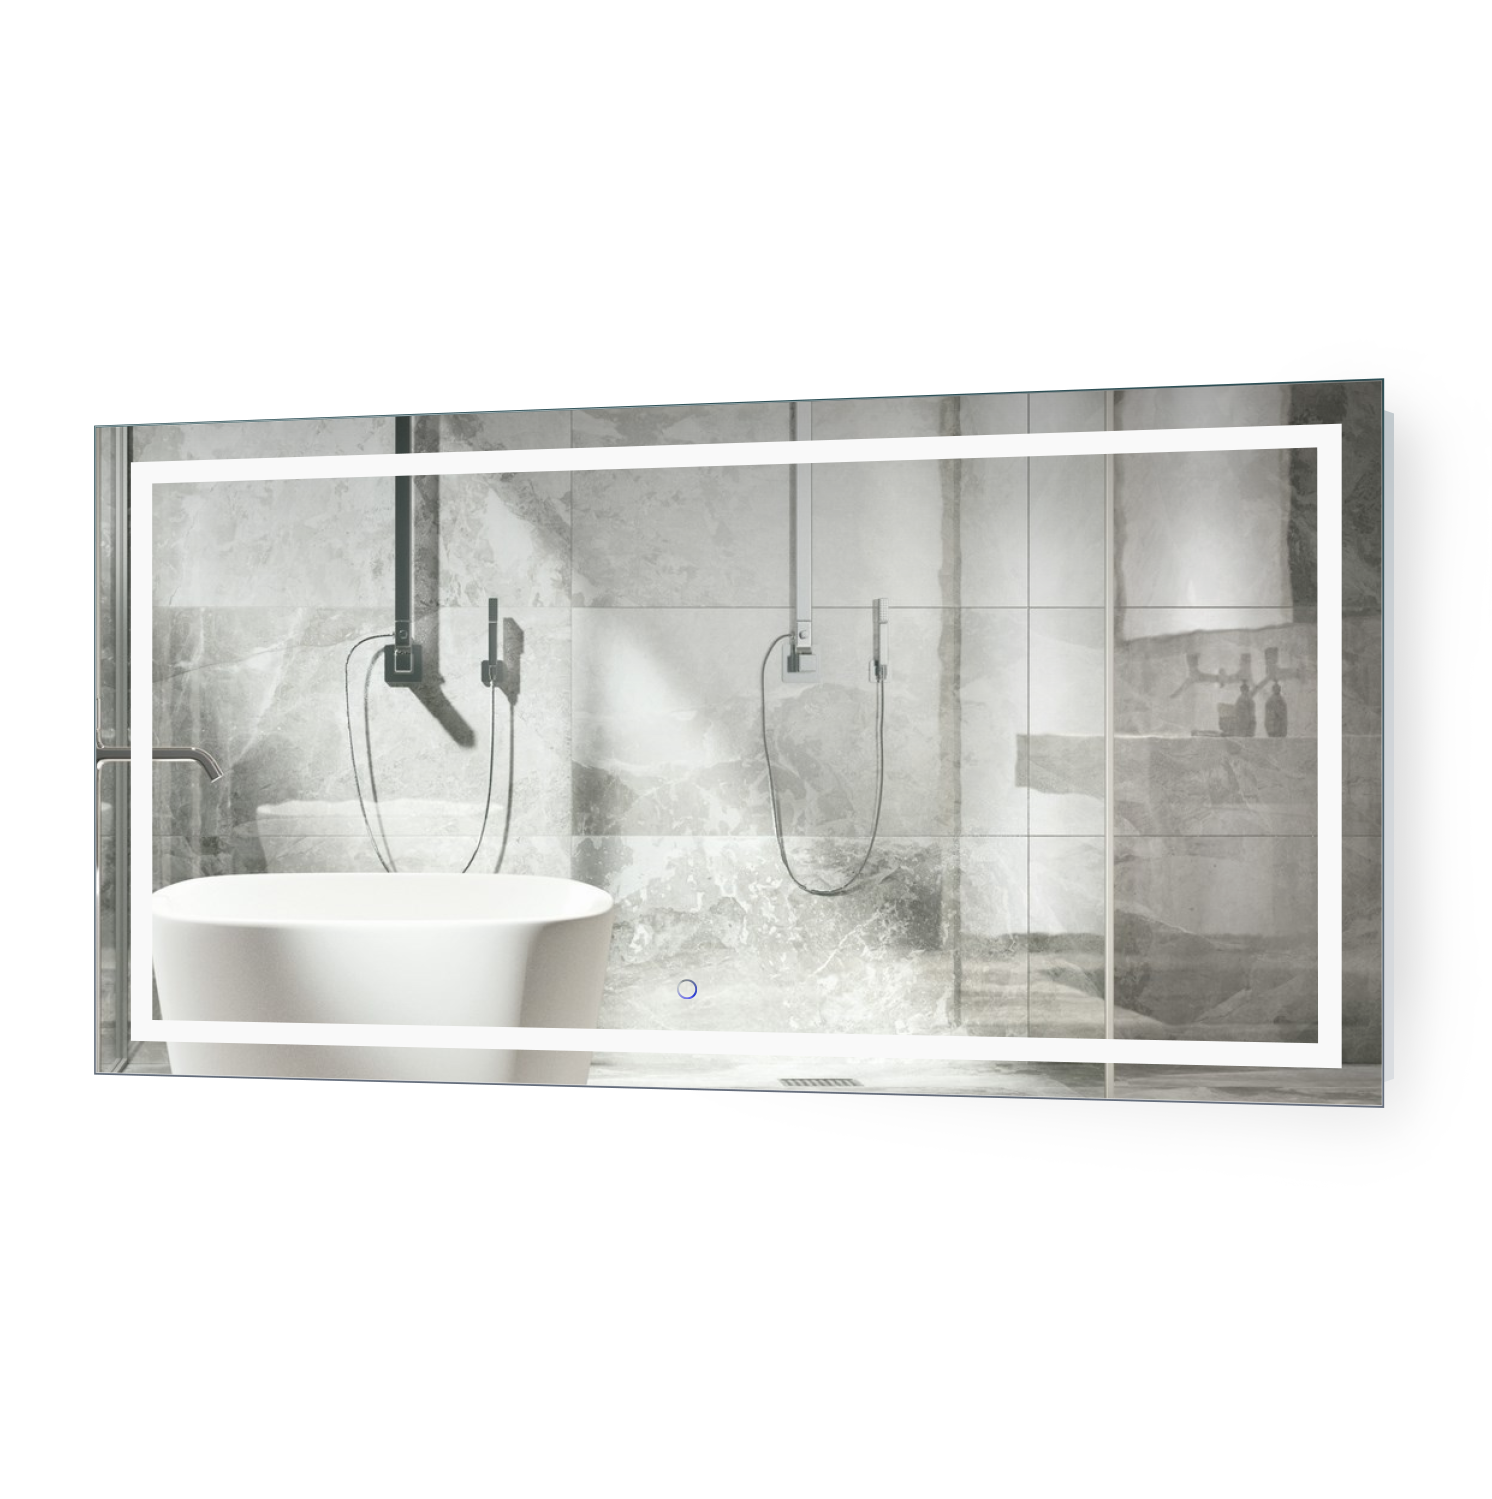 Icon 54 X 24 Led Bathroom Mirror W Dimmer Defogger Lighted Vanity Mirror Krugg Reflections Usa